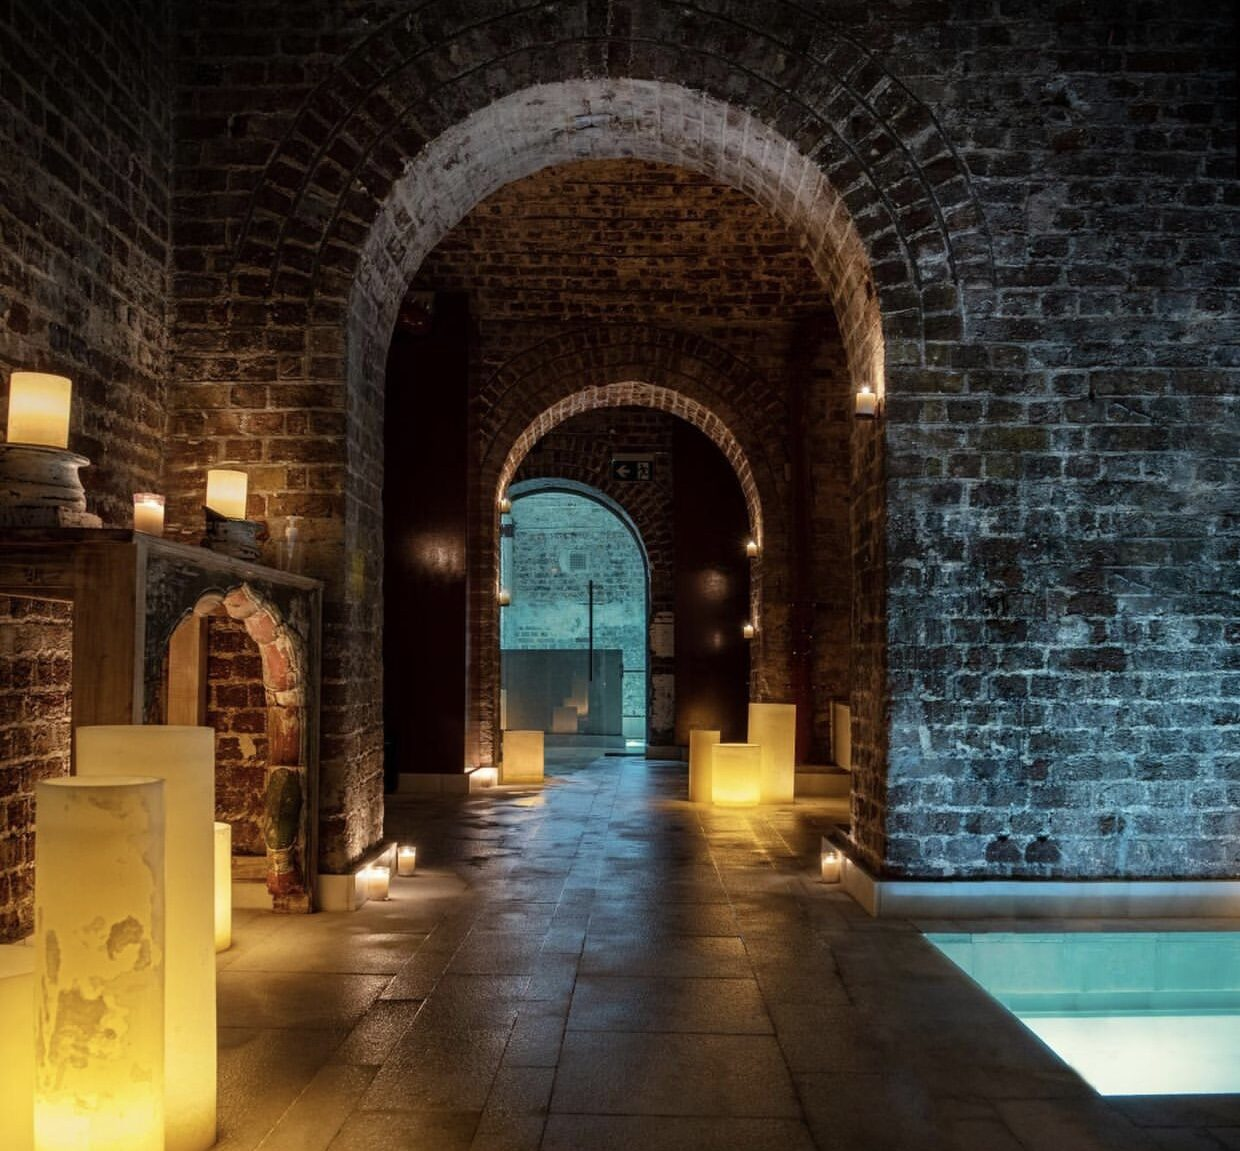 https://thenudge.com/london-things-to-do/aire-ancient-baths/